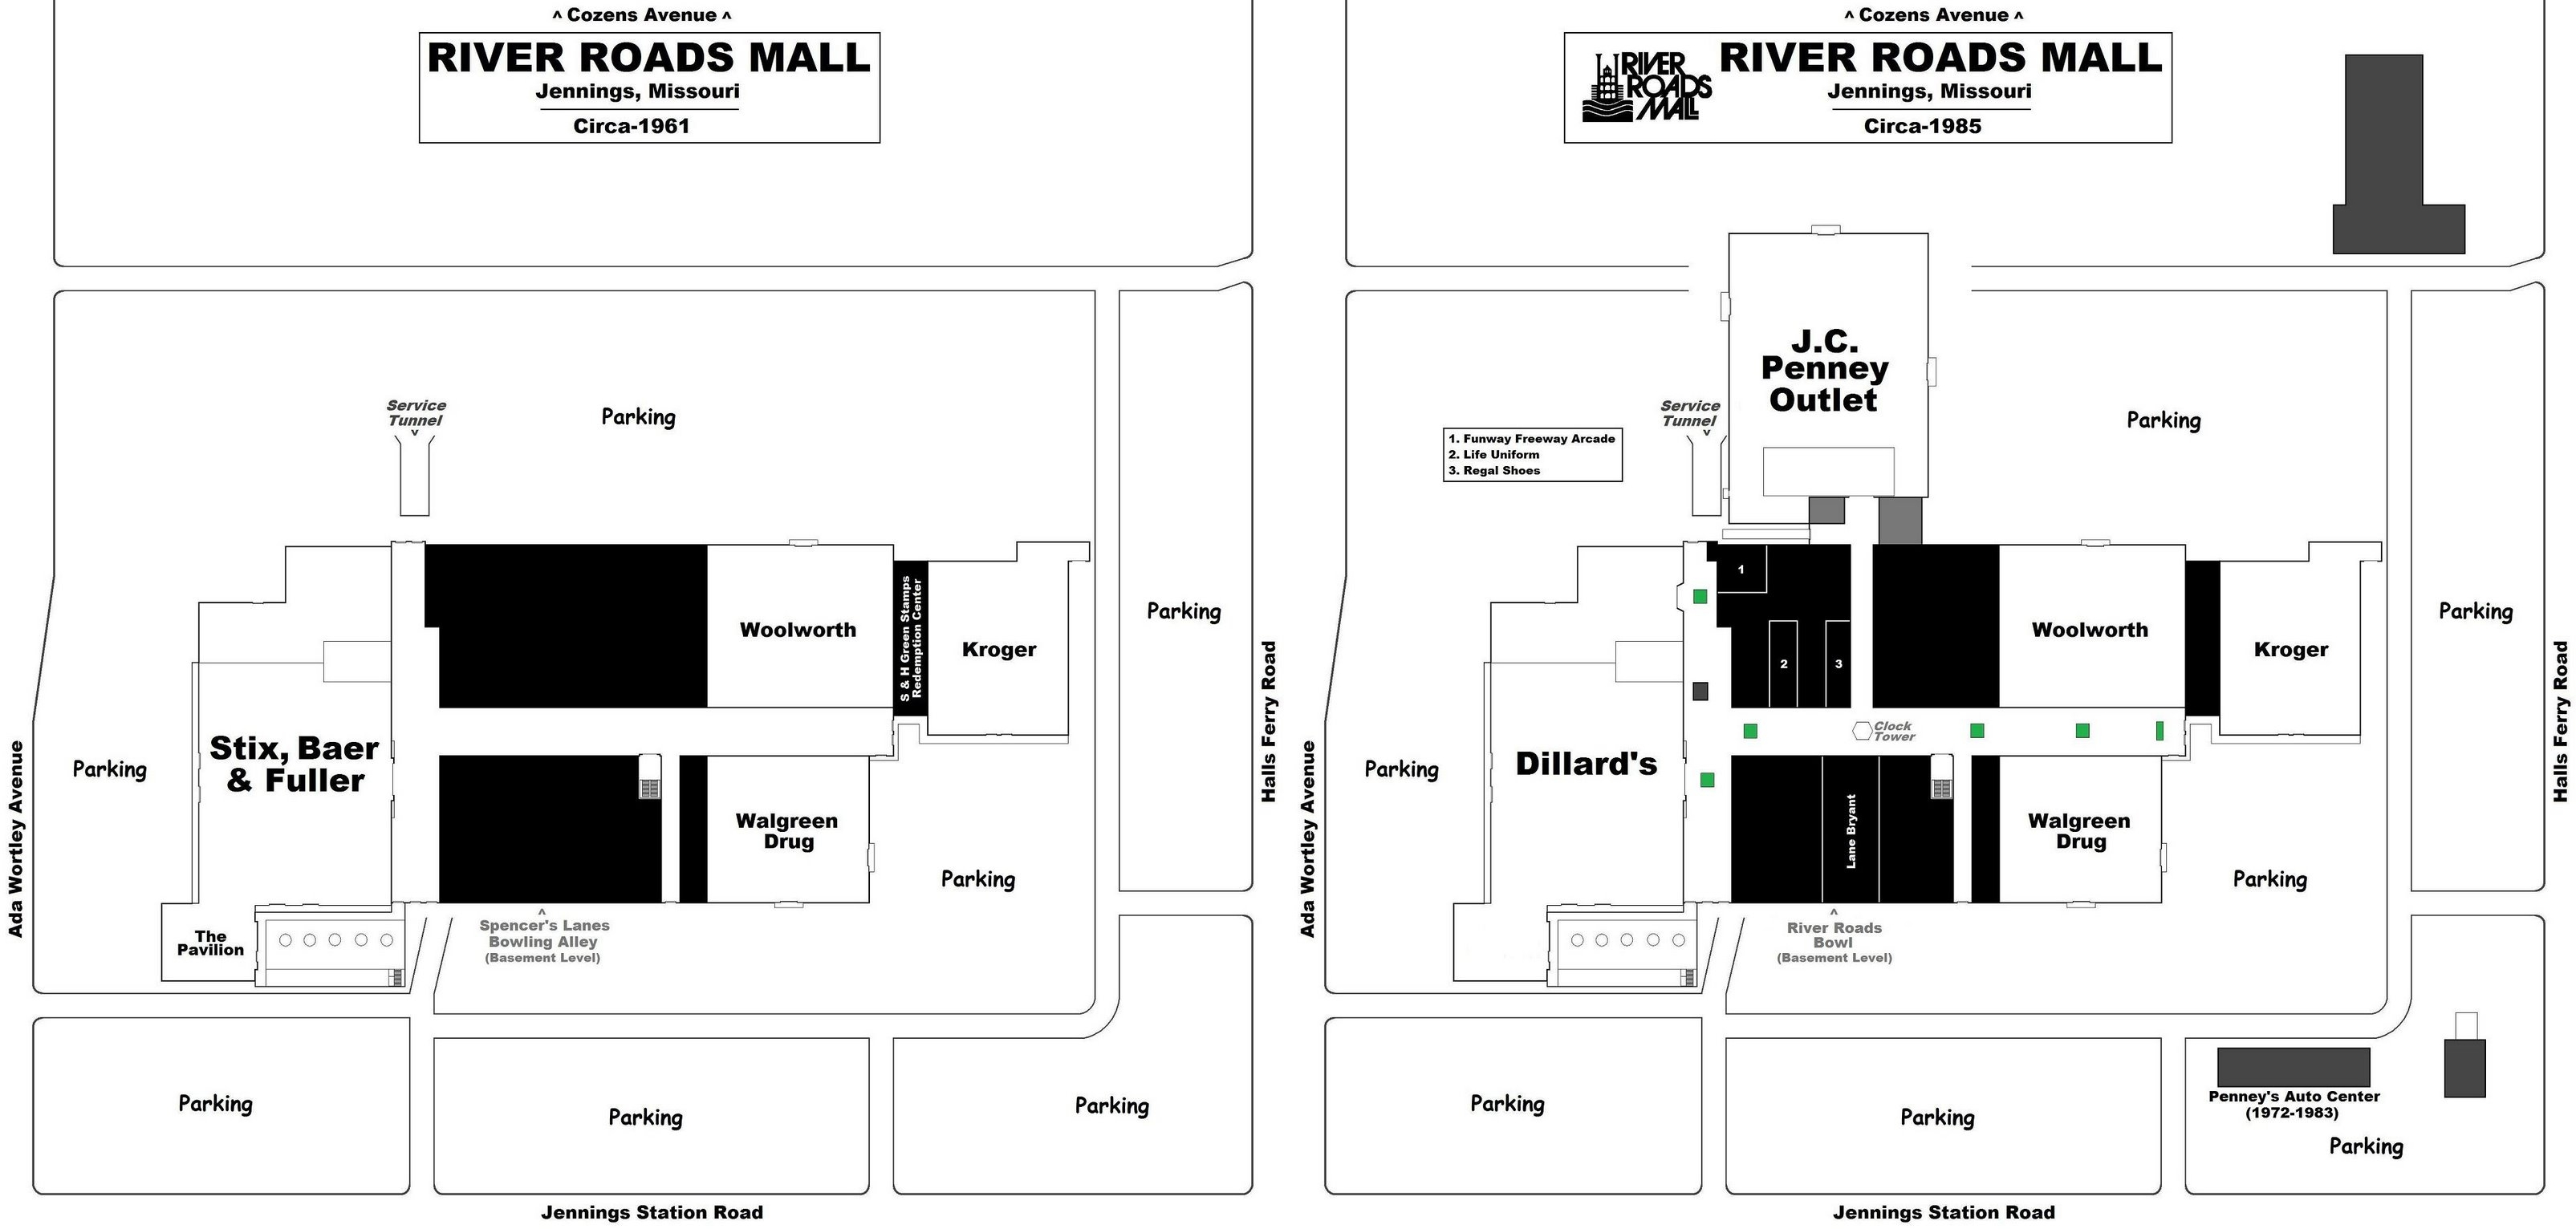 Mall Hall of Fame_River Roads